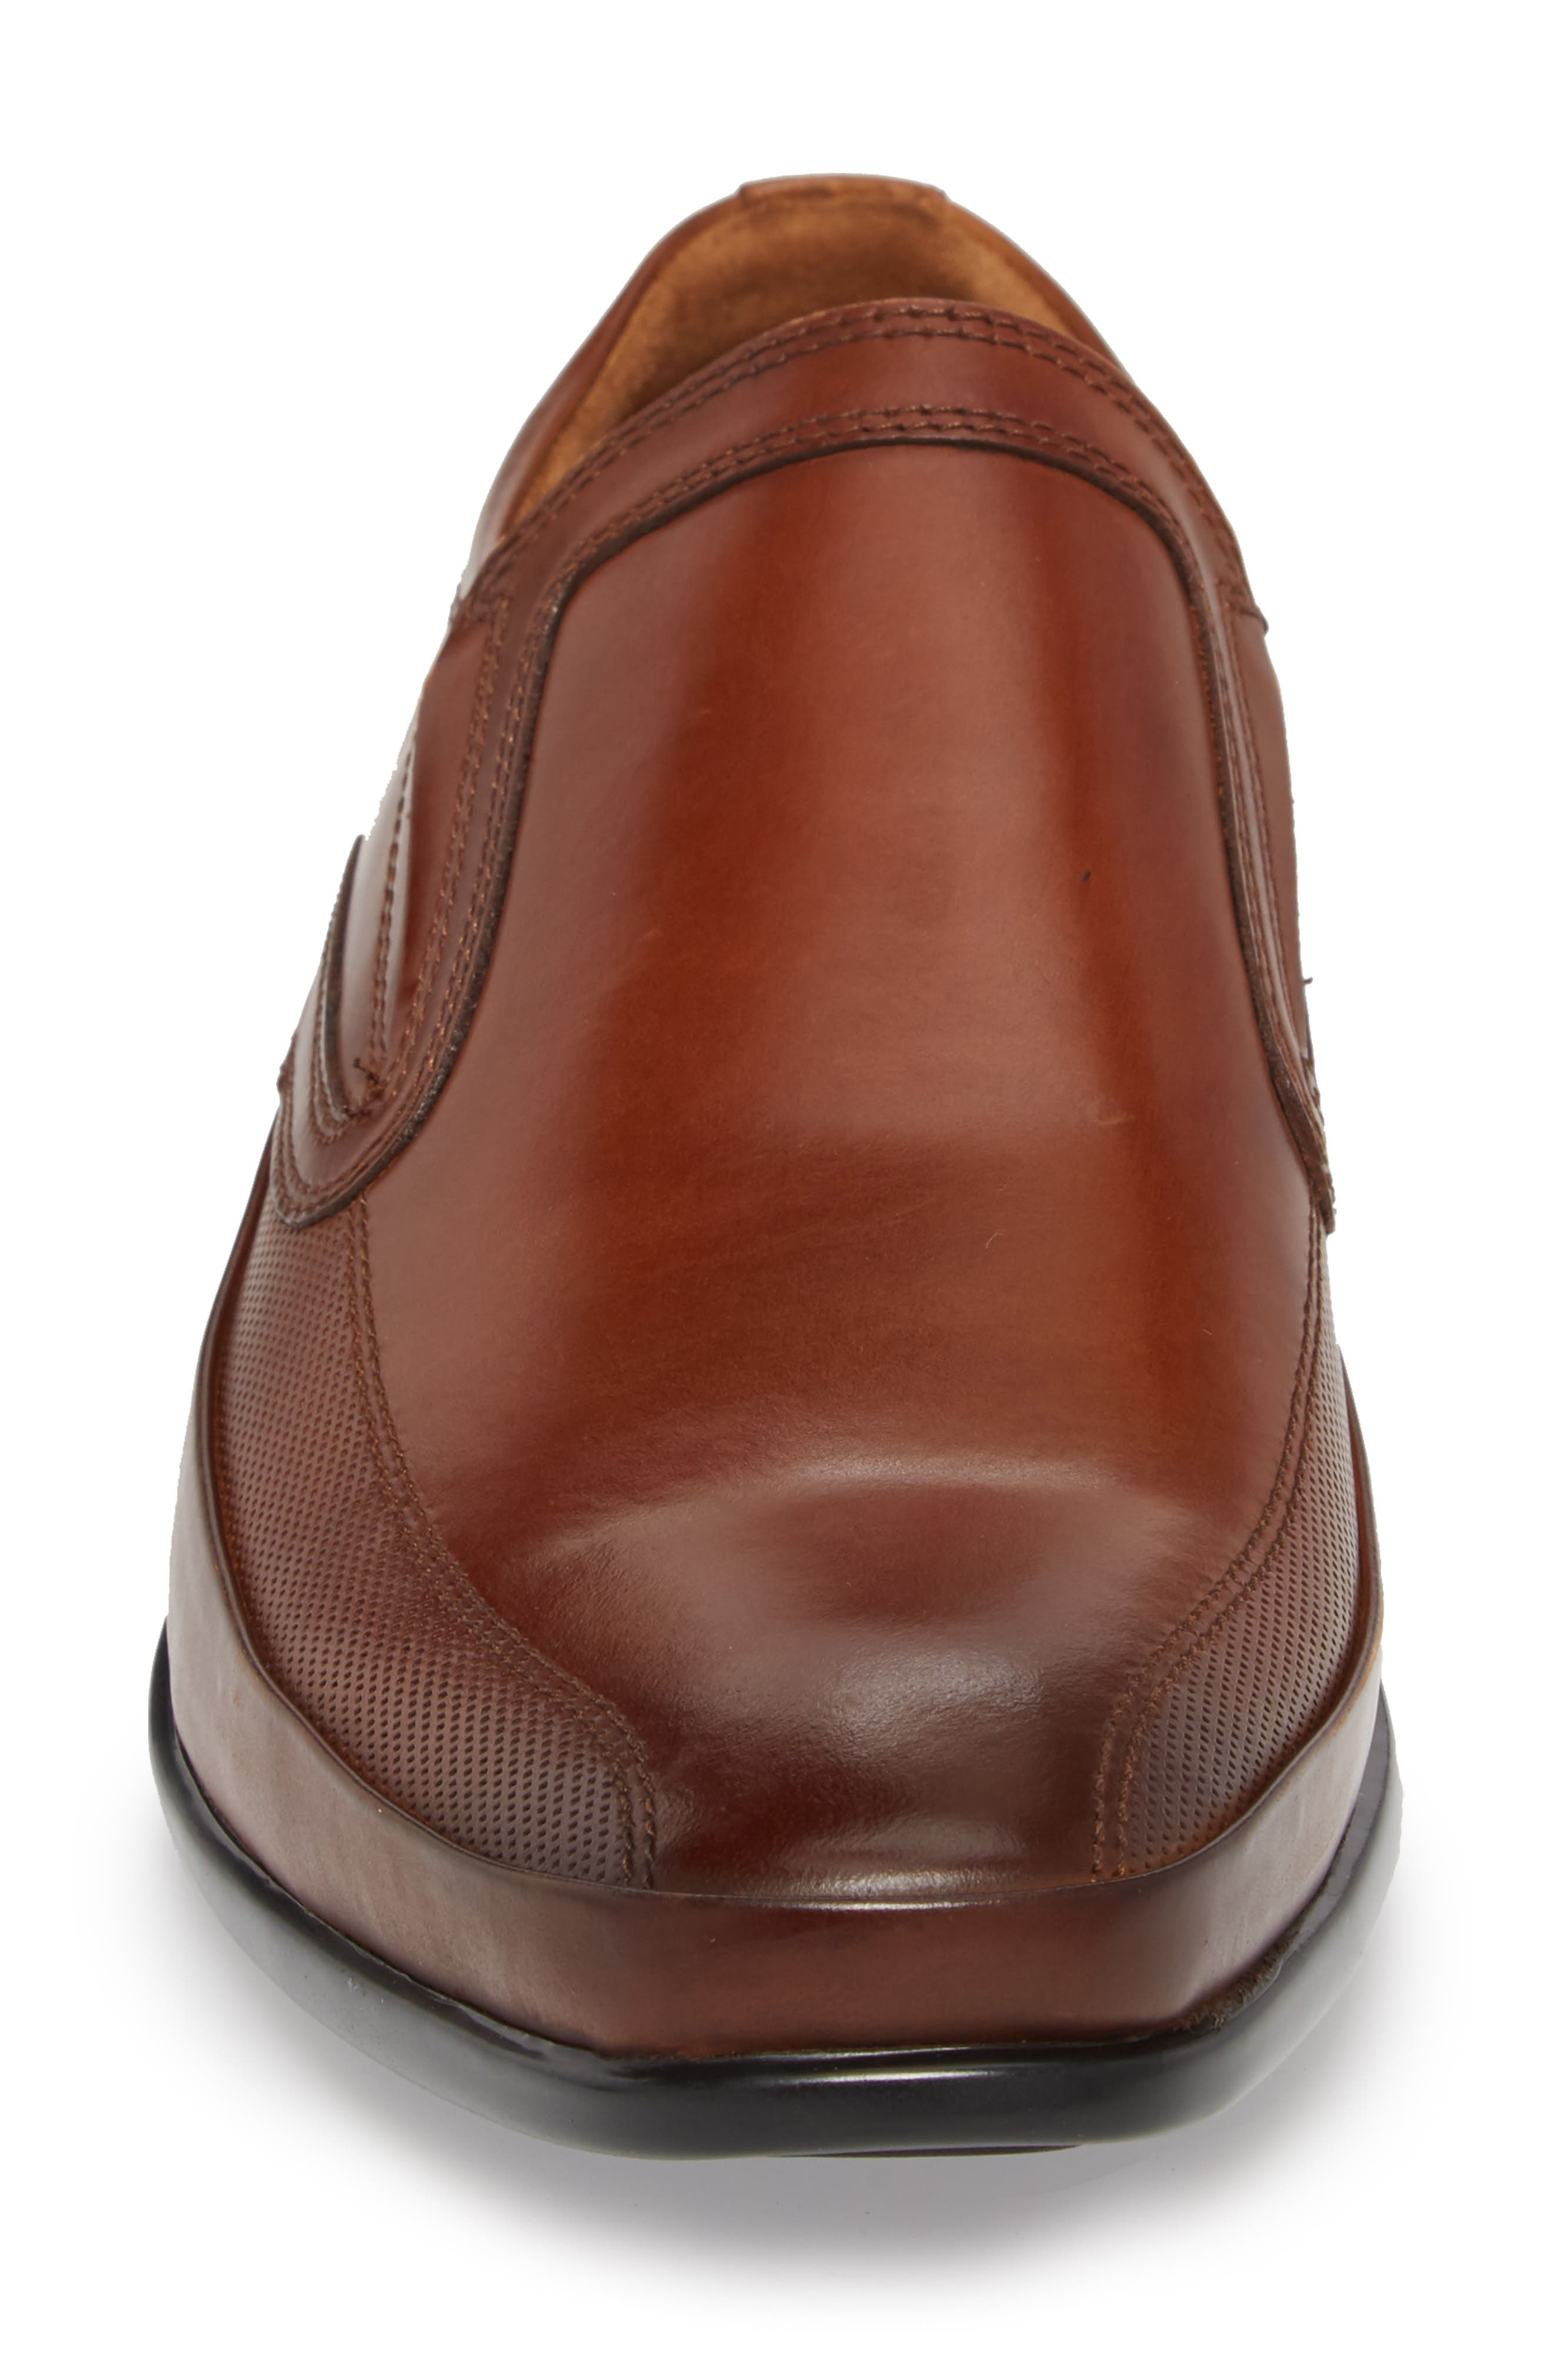 'Extra Official' Venetian Loafer,                             Alternate thumbnail 4, color,                             COGNAC LEATHER